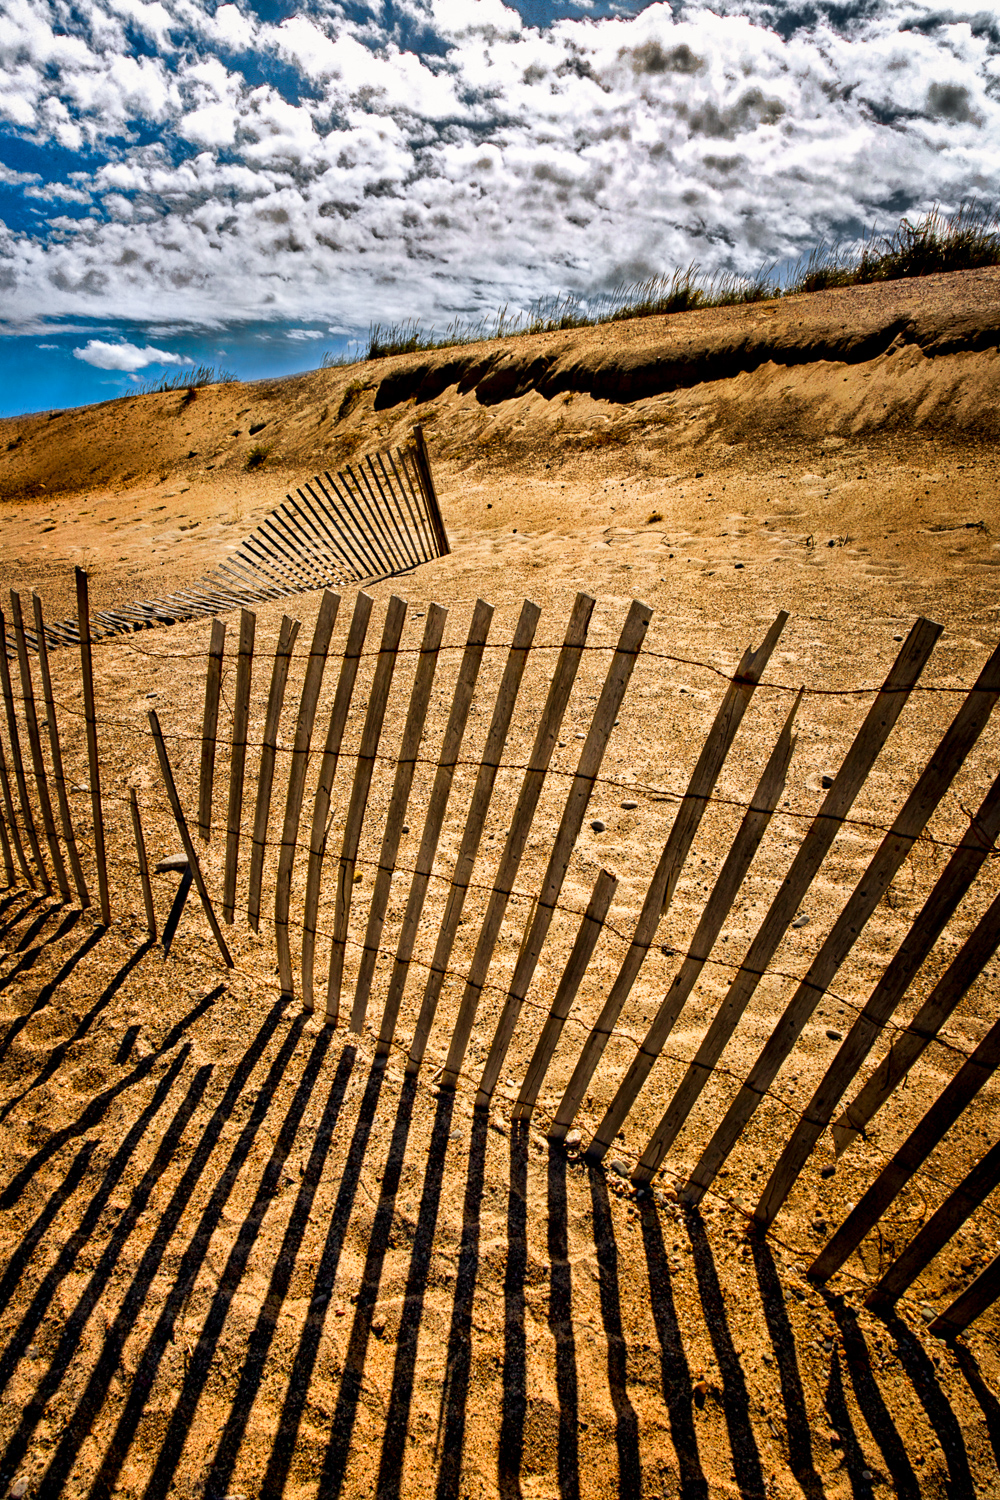 Puffy-Clouds-Over-Old-Sand-Fence-Dune-And-Shadows-2-2.jpg